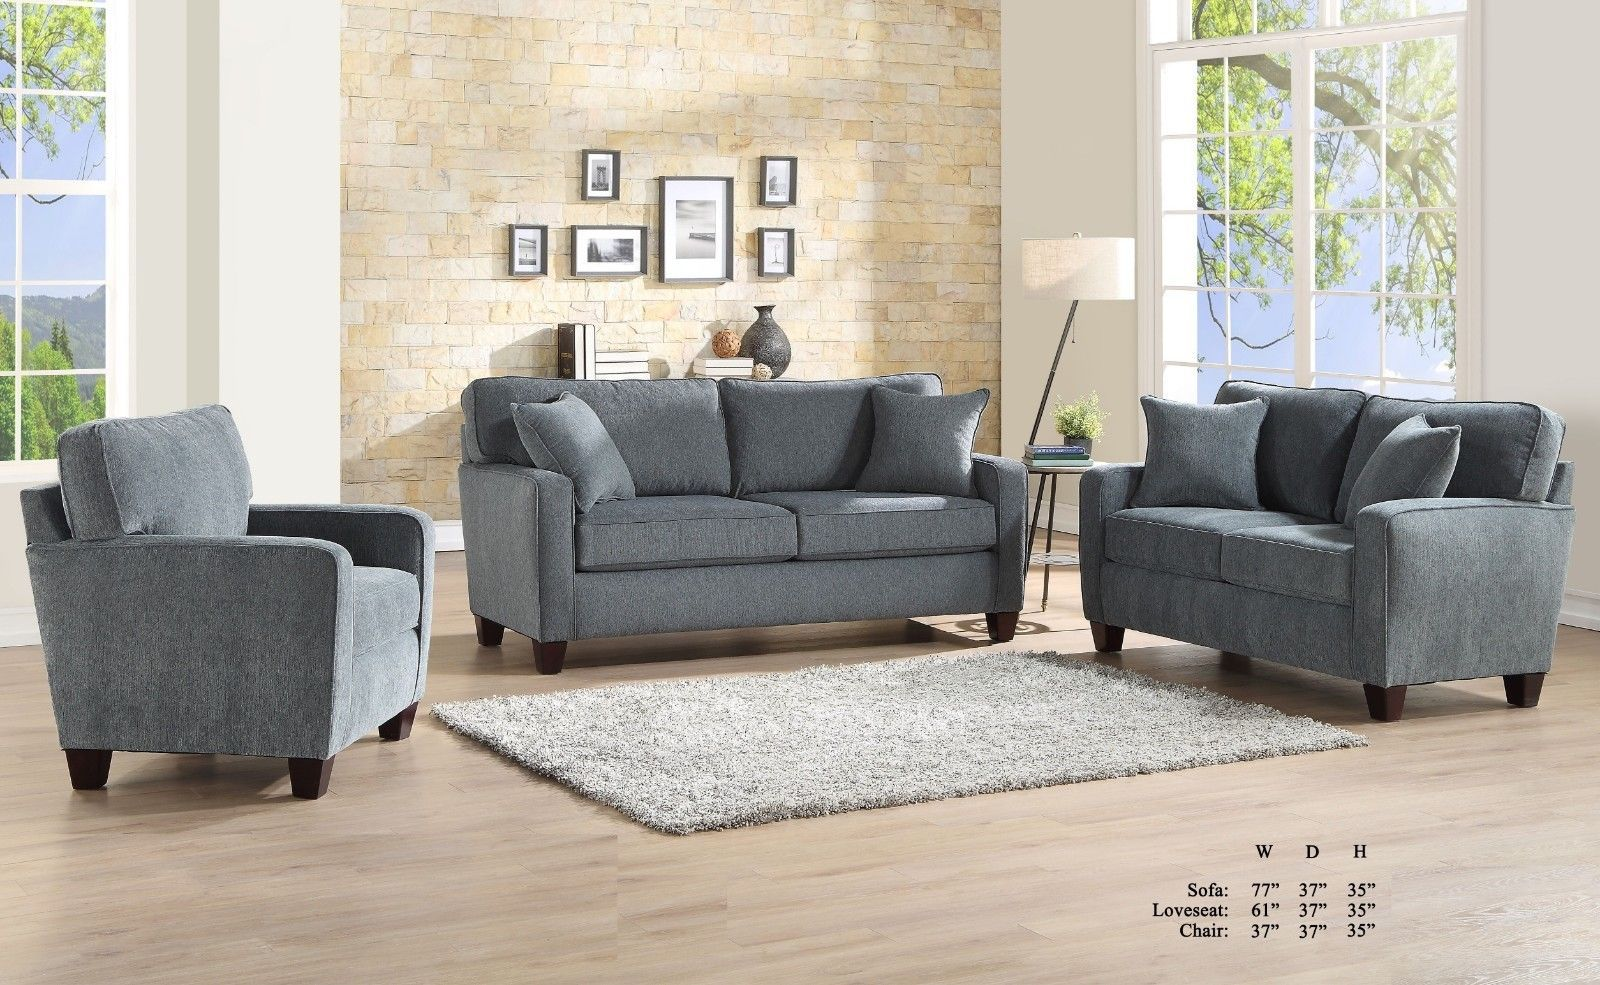 Sofa Loveseat Chair 3pc Sofa Set Gray Fabric Living Room Furniture Couch Set Sofa Living Ideas Of Sofa Living Sofaliving Sofa Sofa Loveseat Chair Sofa